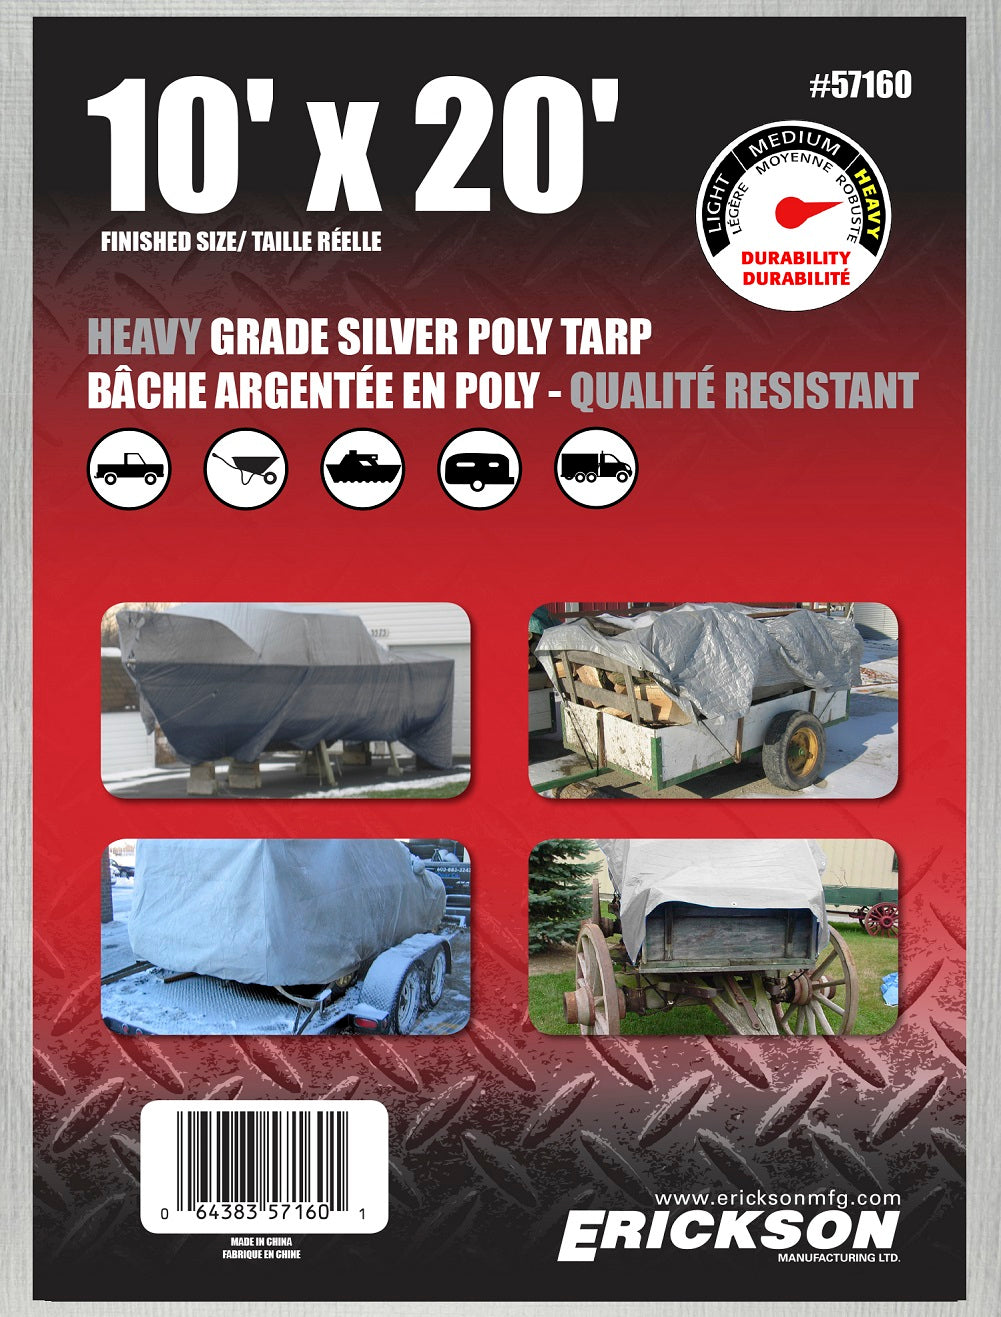 10 x 20 Heavy-Duty Poly Tarp Silver